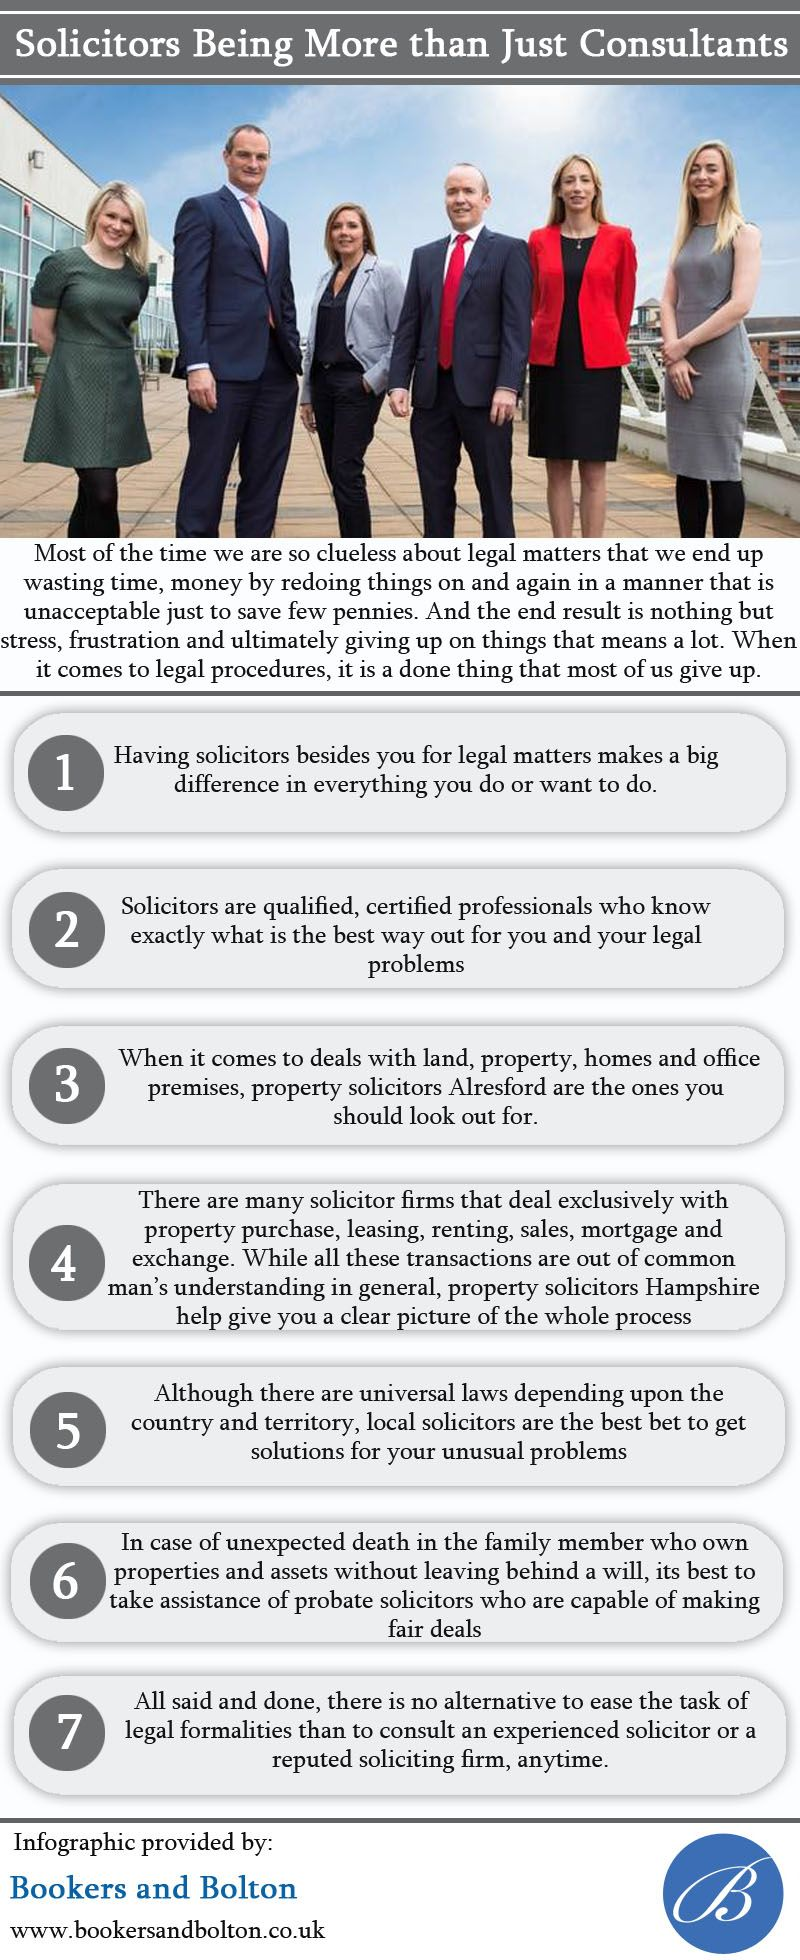 Most homes have an office and it can be frustrating when you can t - When It Comes To Deals With Land Property Homes And Office Premises Property Solicitors Alresford Are The Ones You Should Look Out For For More